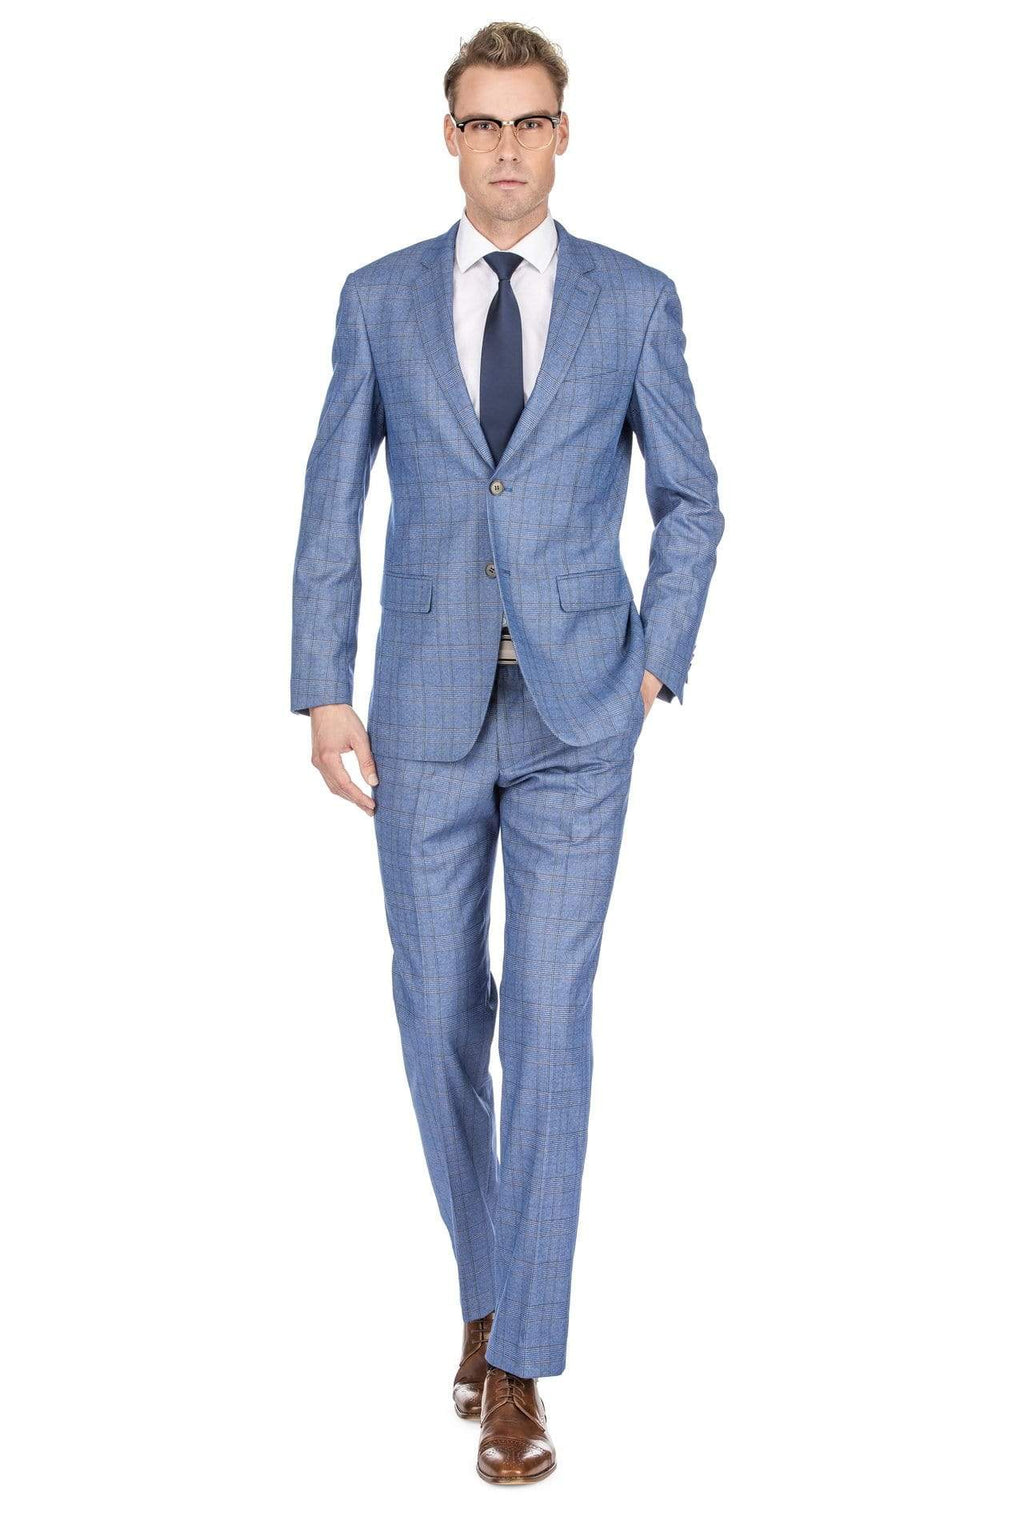 DAILY HAUTE Men's Suits BLUE / 36Rx30W Gino Vitale Men's Check Slim Fit Suits